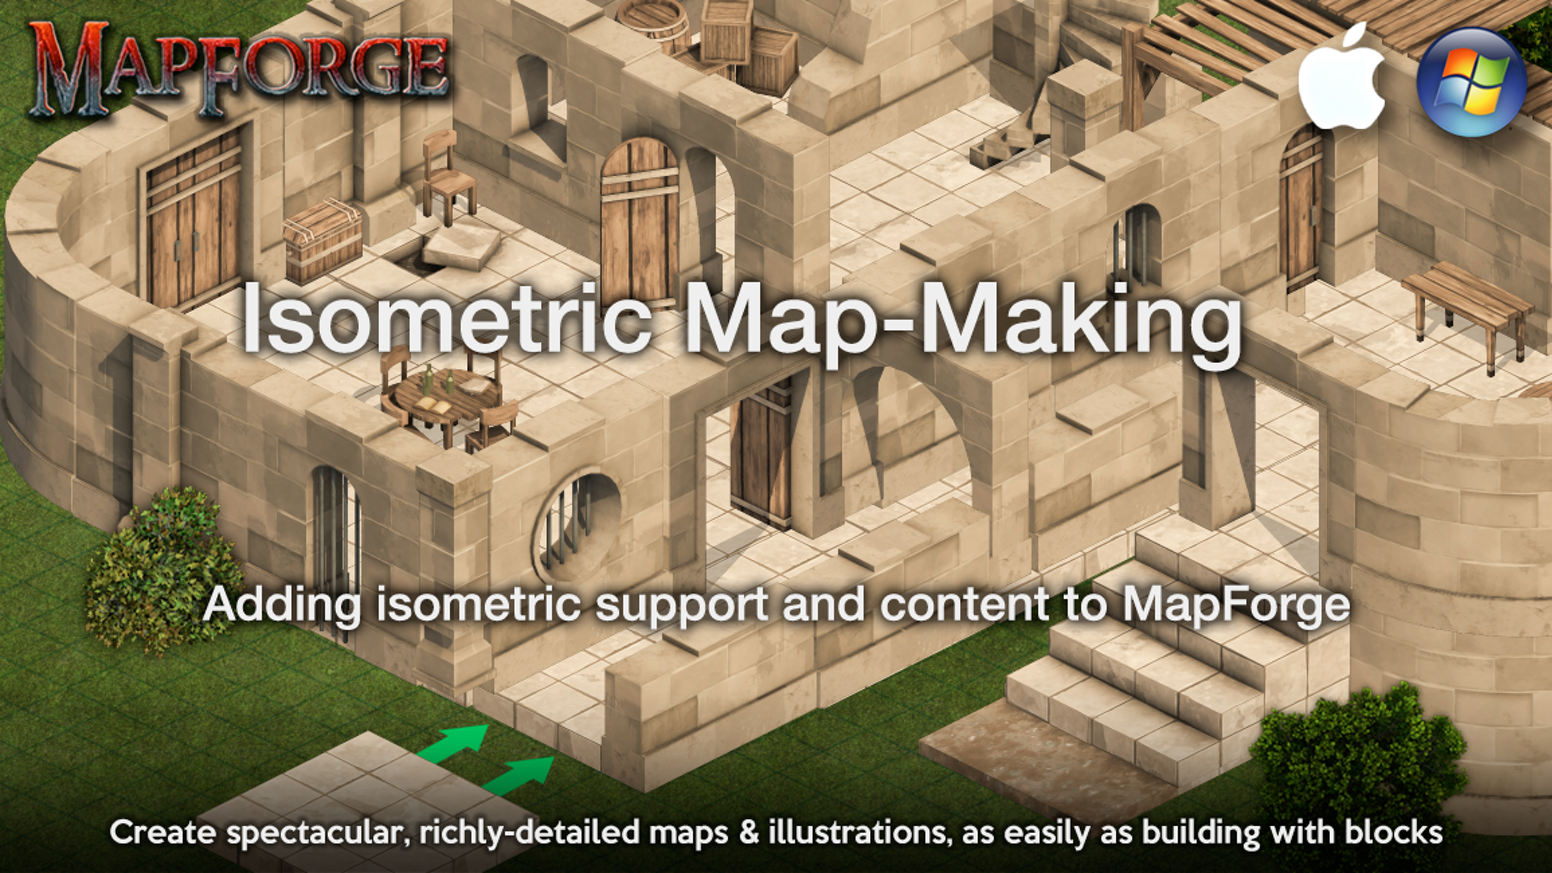 Developing new features to support isometric mapping in MapForge AND creating a wealth of top-notch isometric mapping content Add-Ons